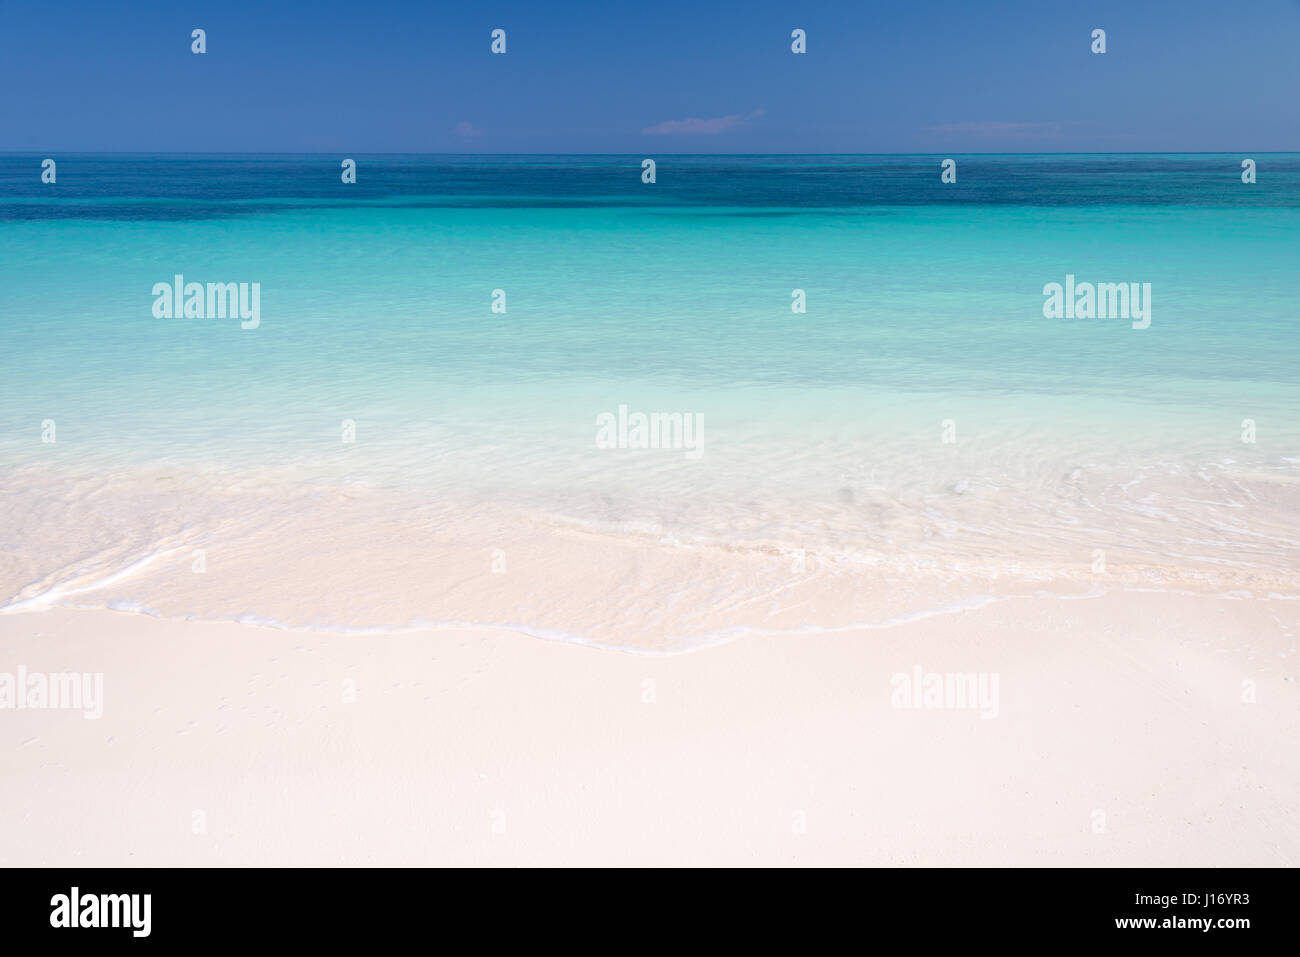 Sand and caribbean sea background - Stock Image